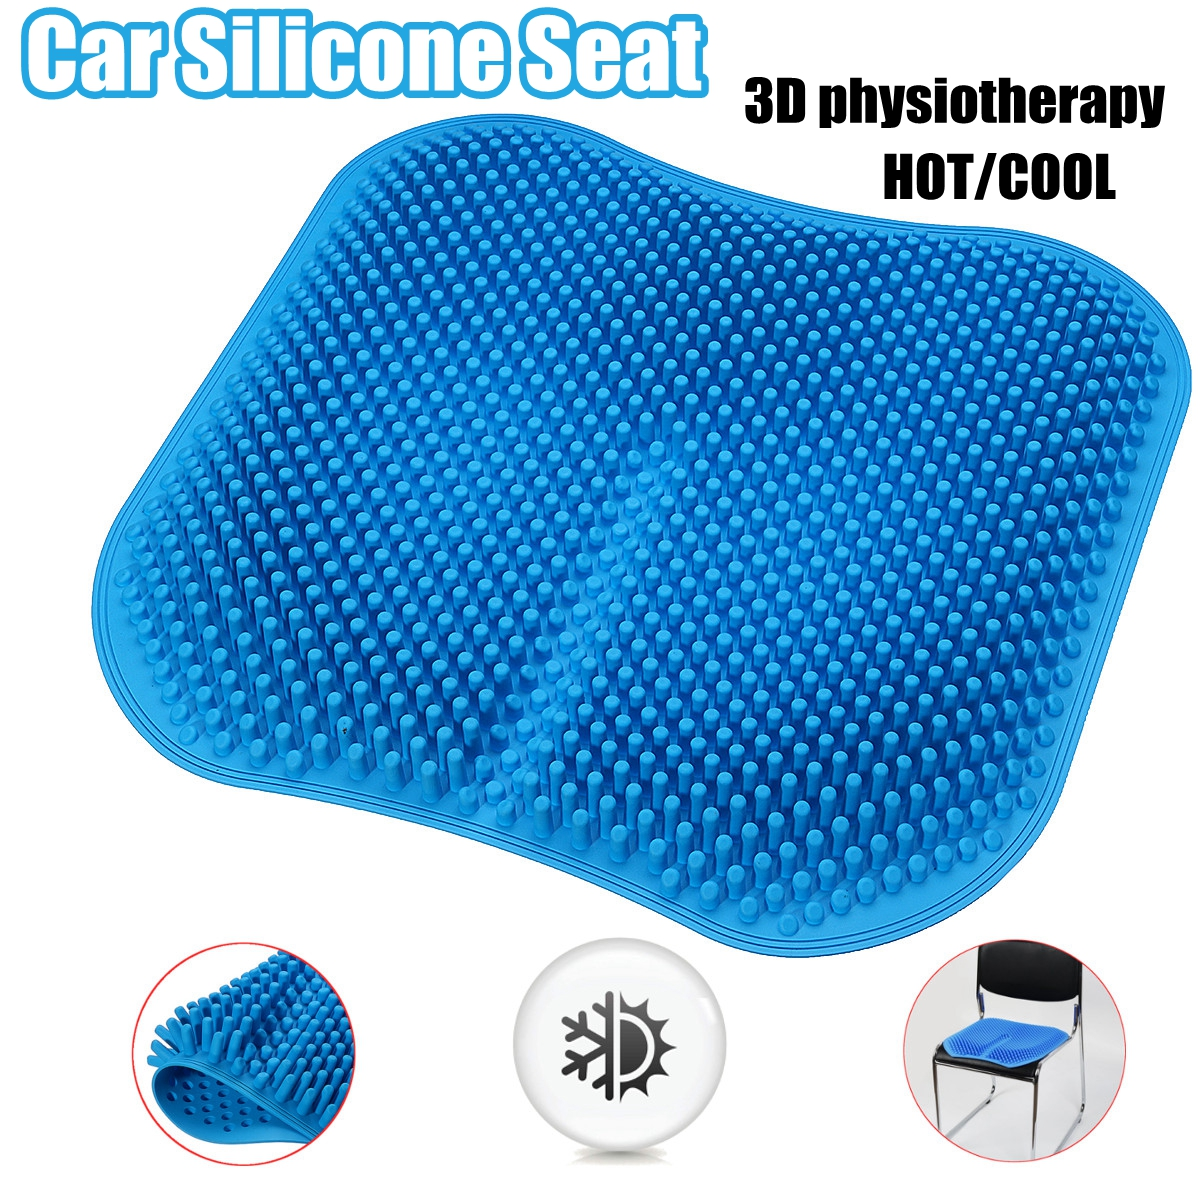 Car Seat 3D Physiotherapy Silicone Gel Comfort Cushion Car Office Cool/Hot Massage Seat